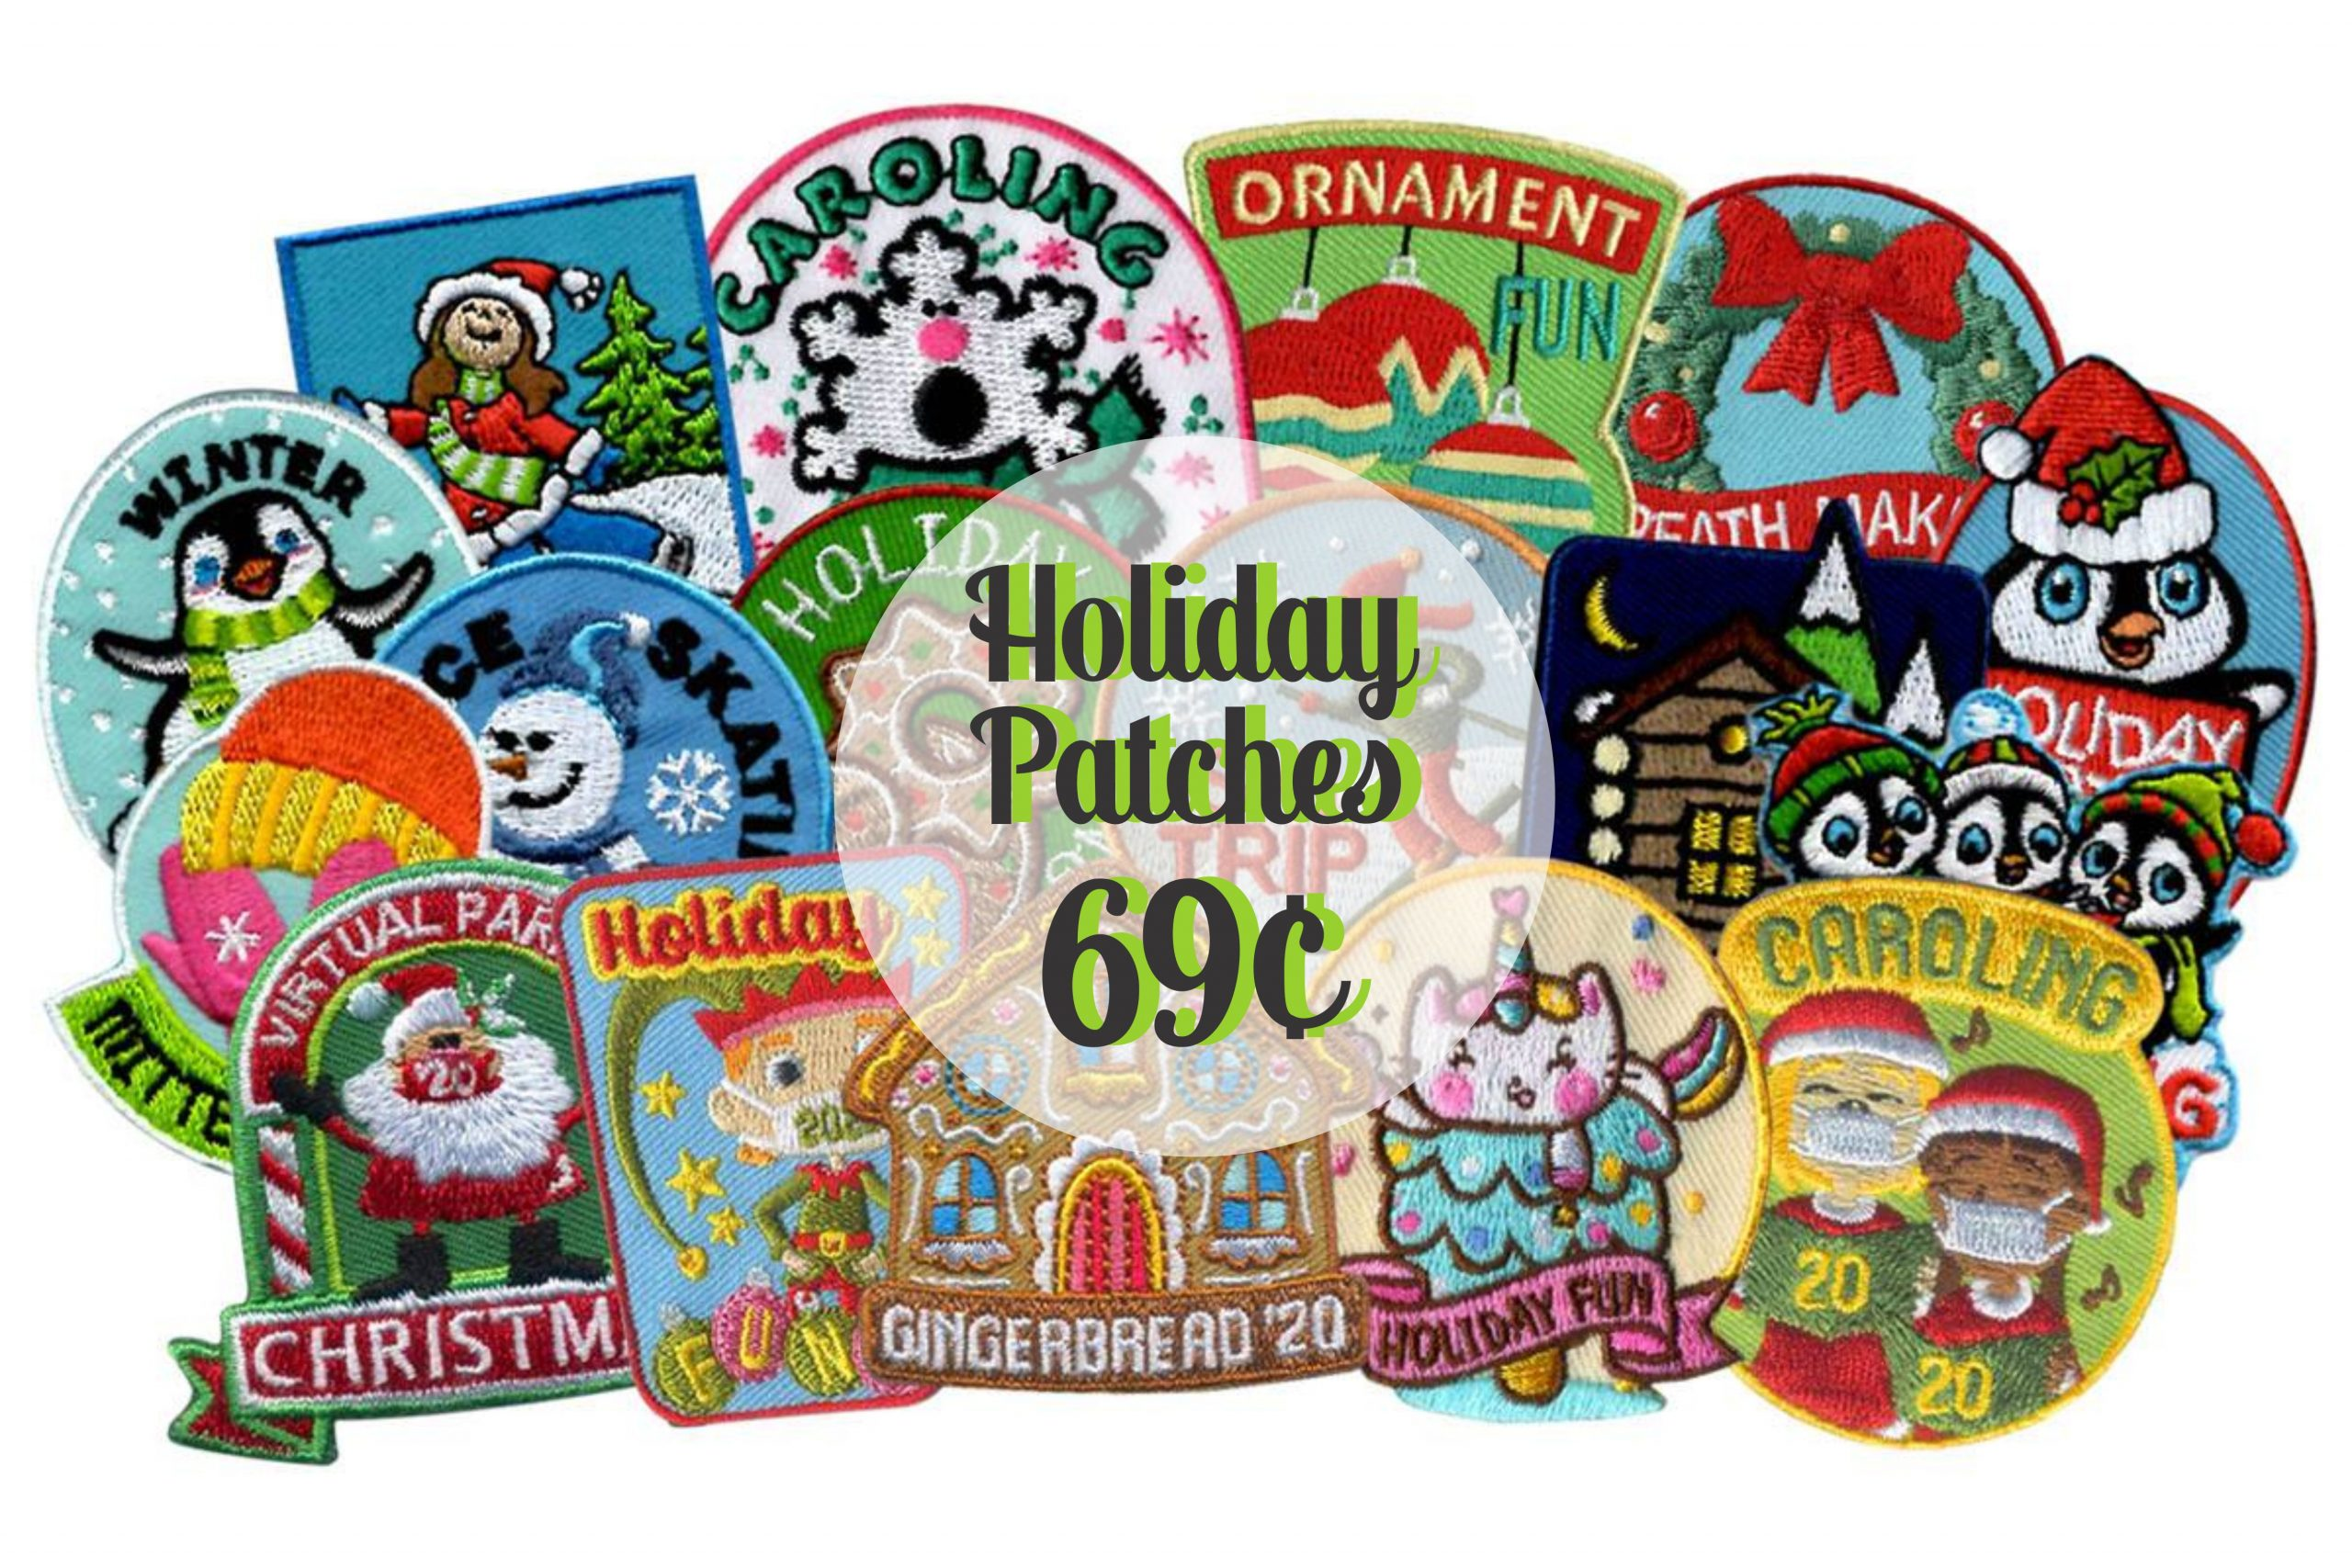 holiday patches 69 cents